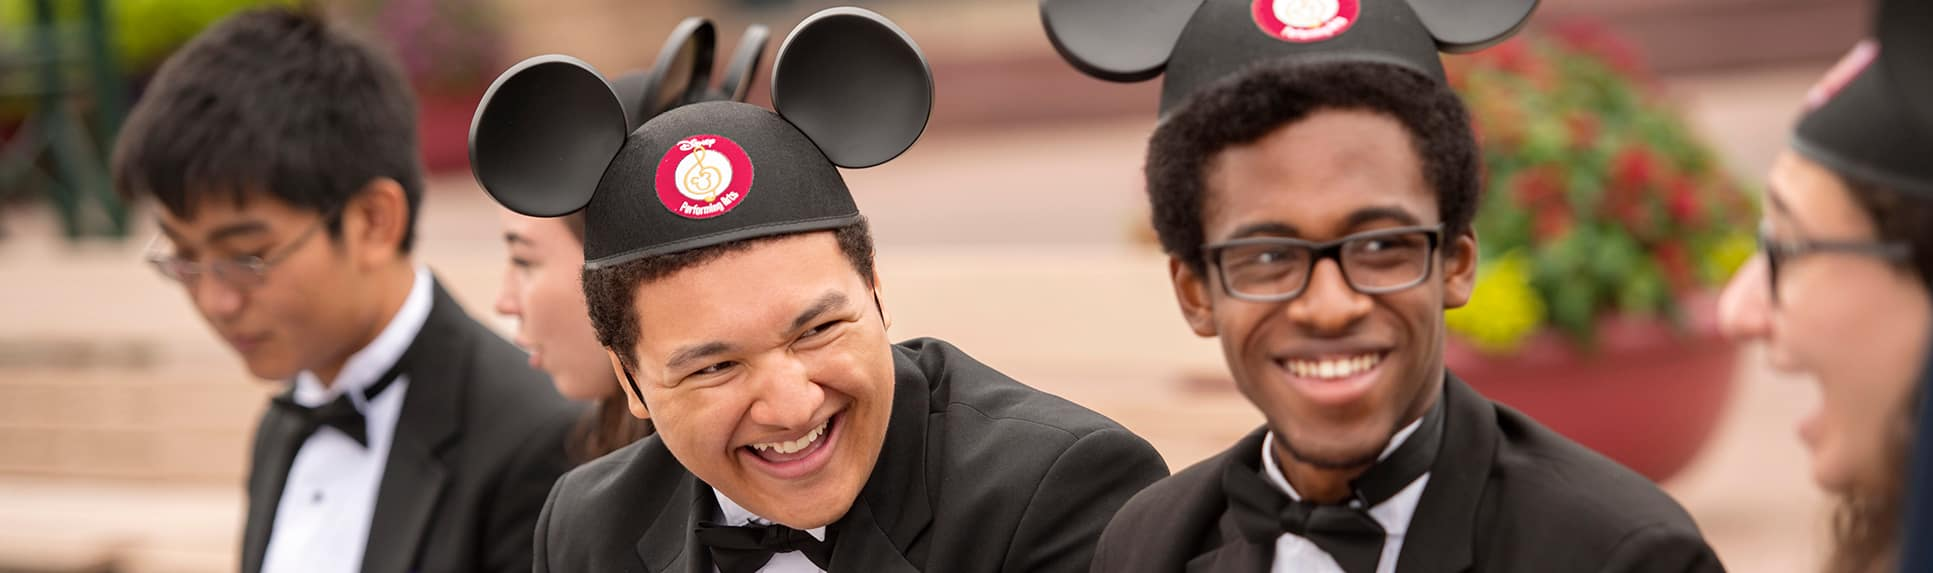 Young adults wearing formal clothing and Mickey ears